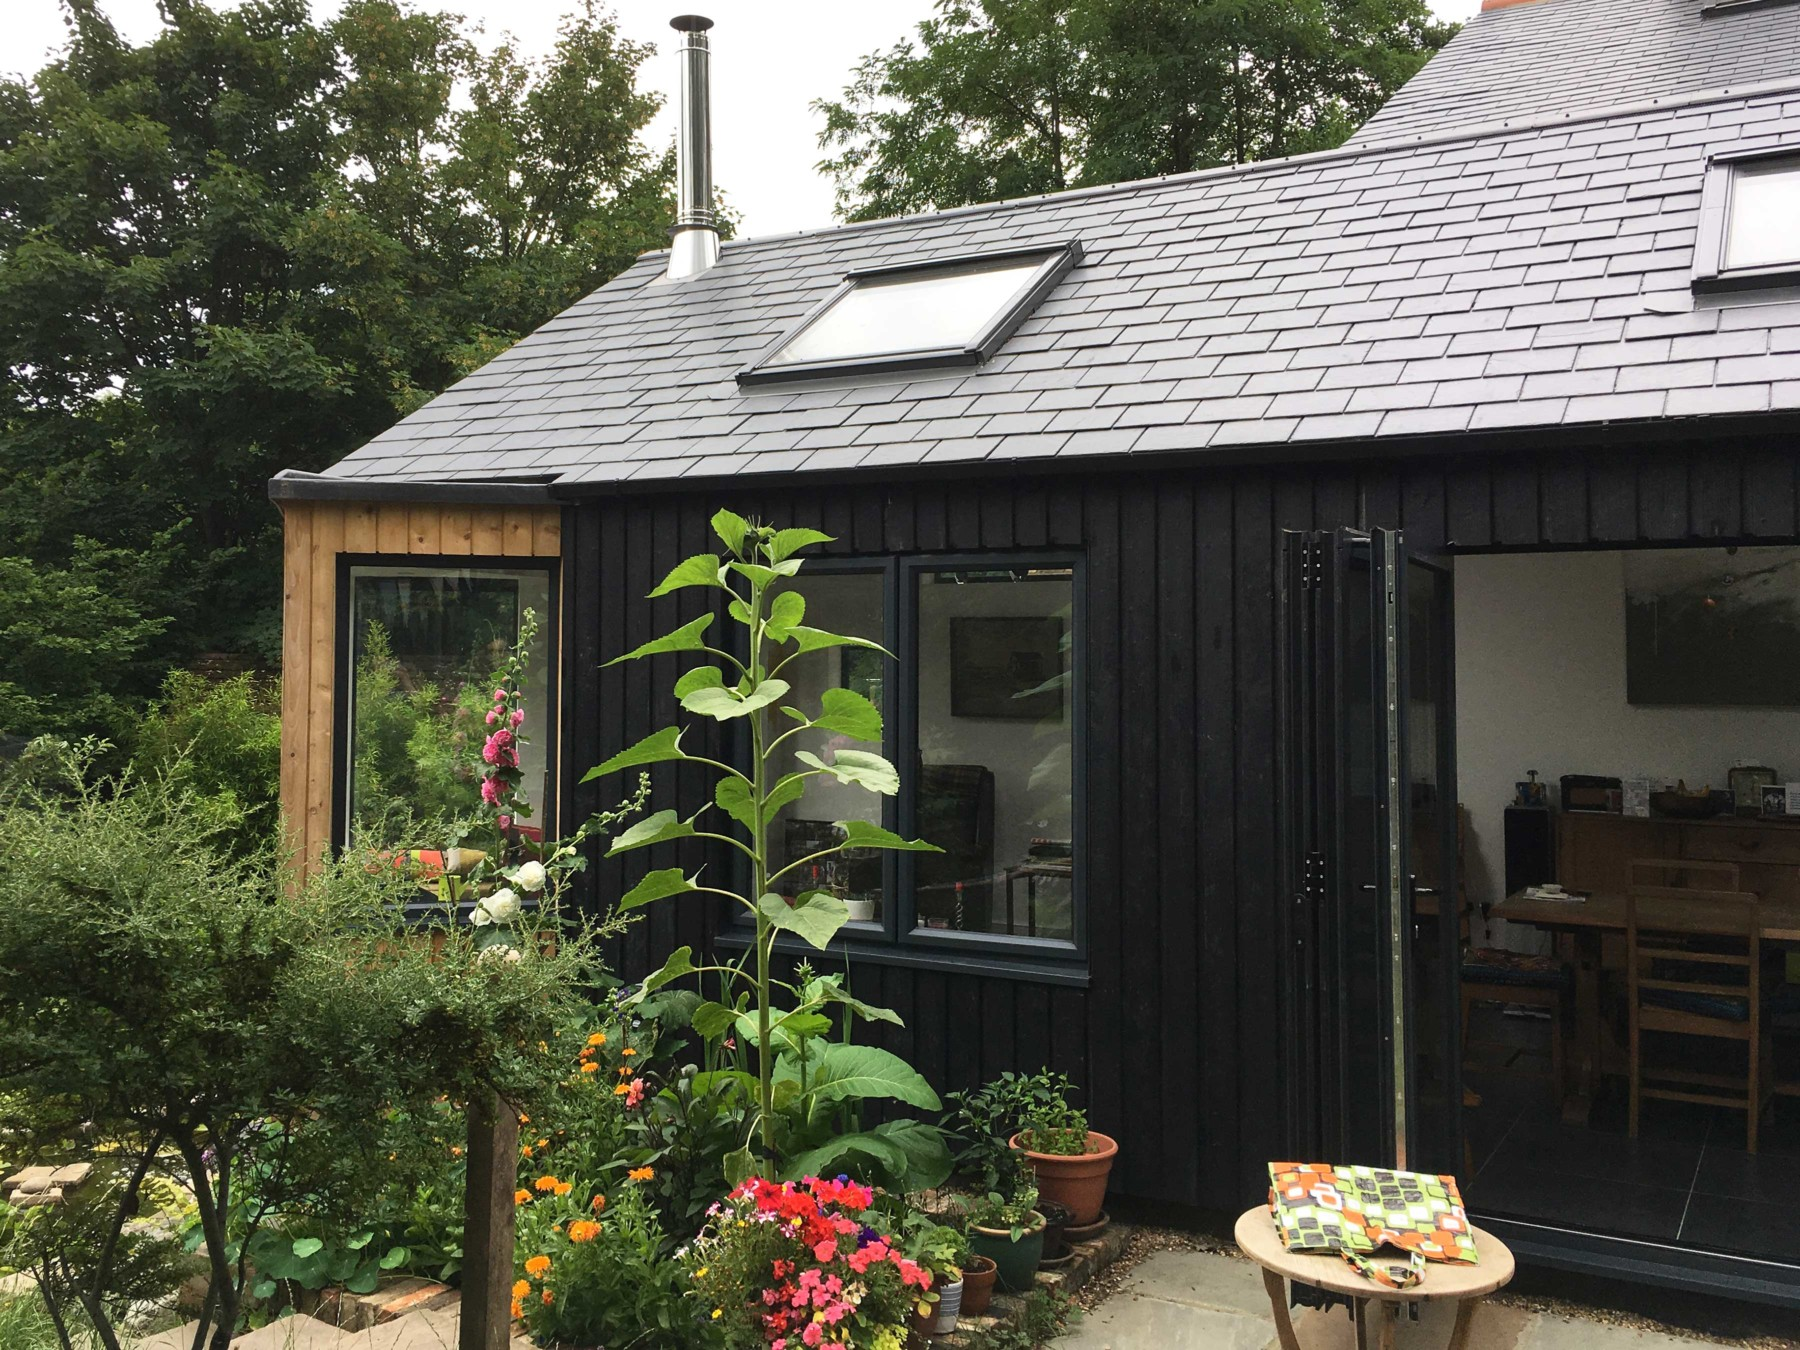 Sarah-Wigglesworth-Architects Station-Cottages Exterior-Facade 3600